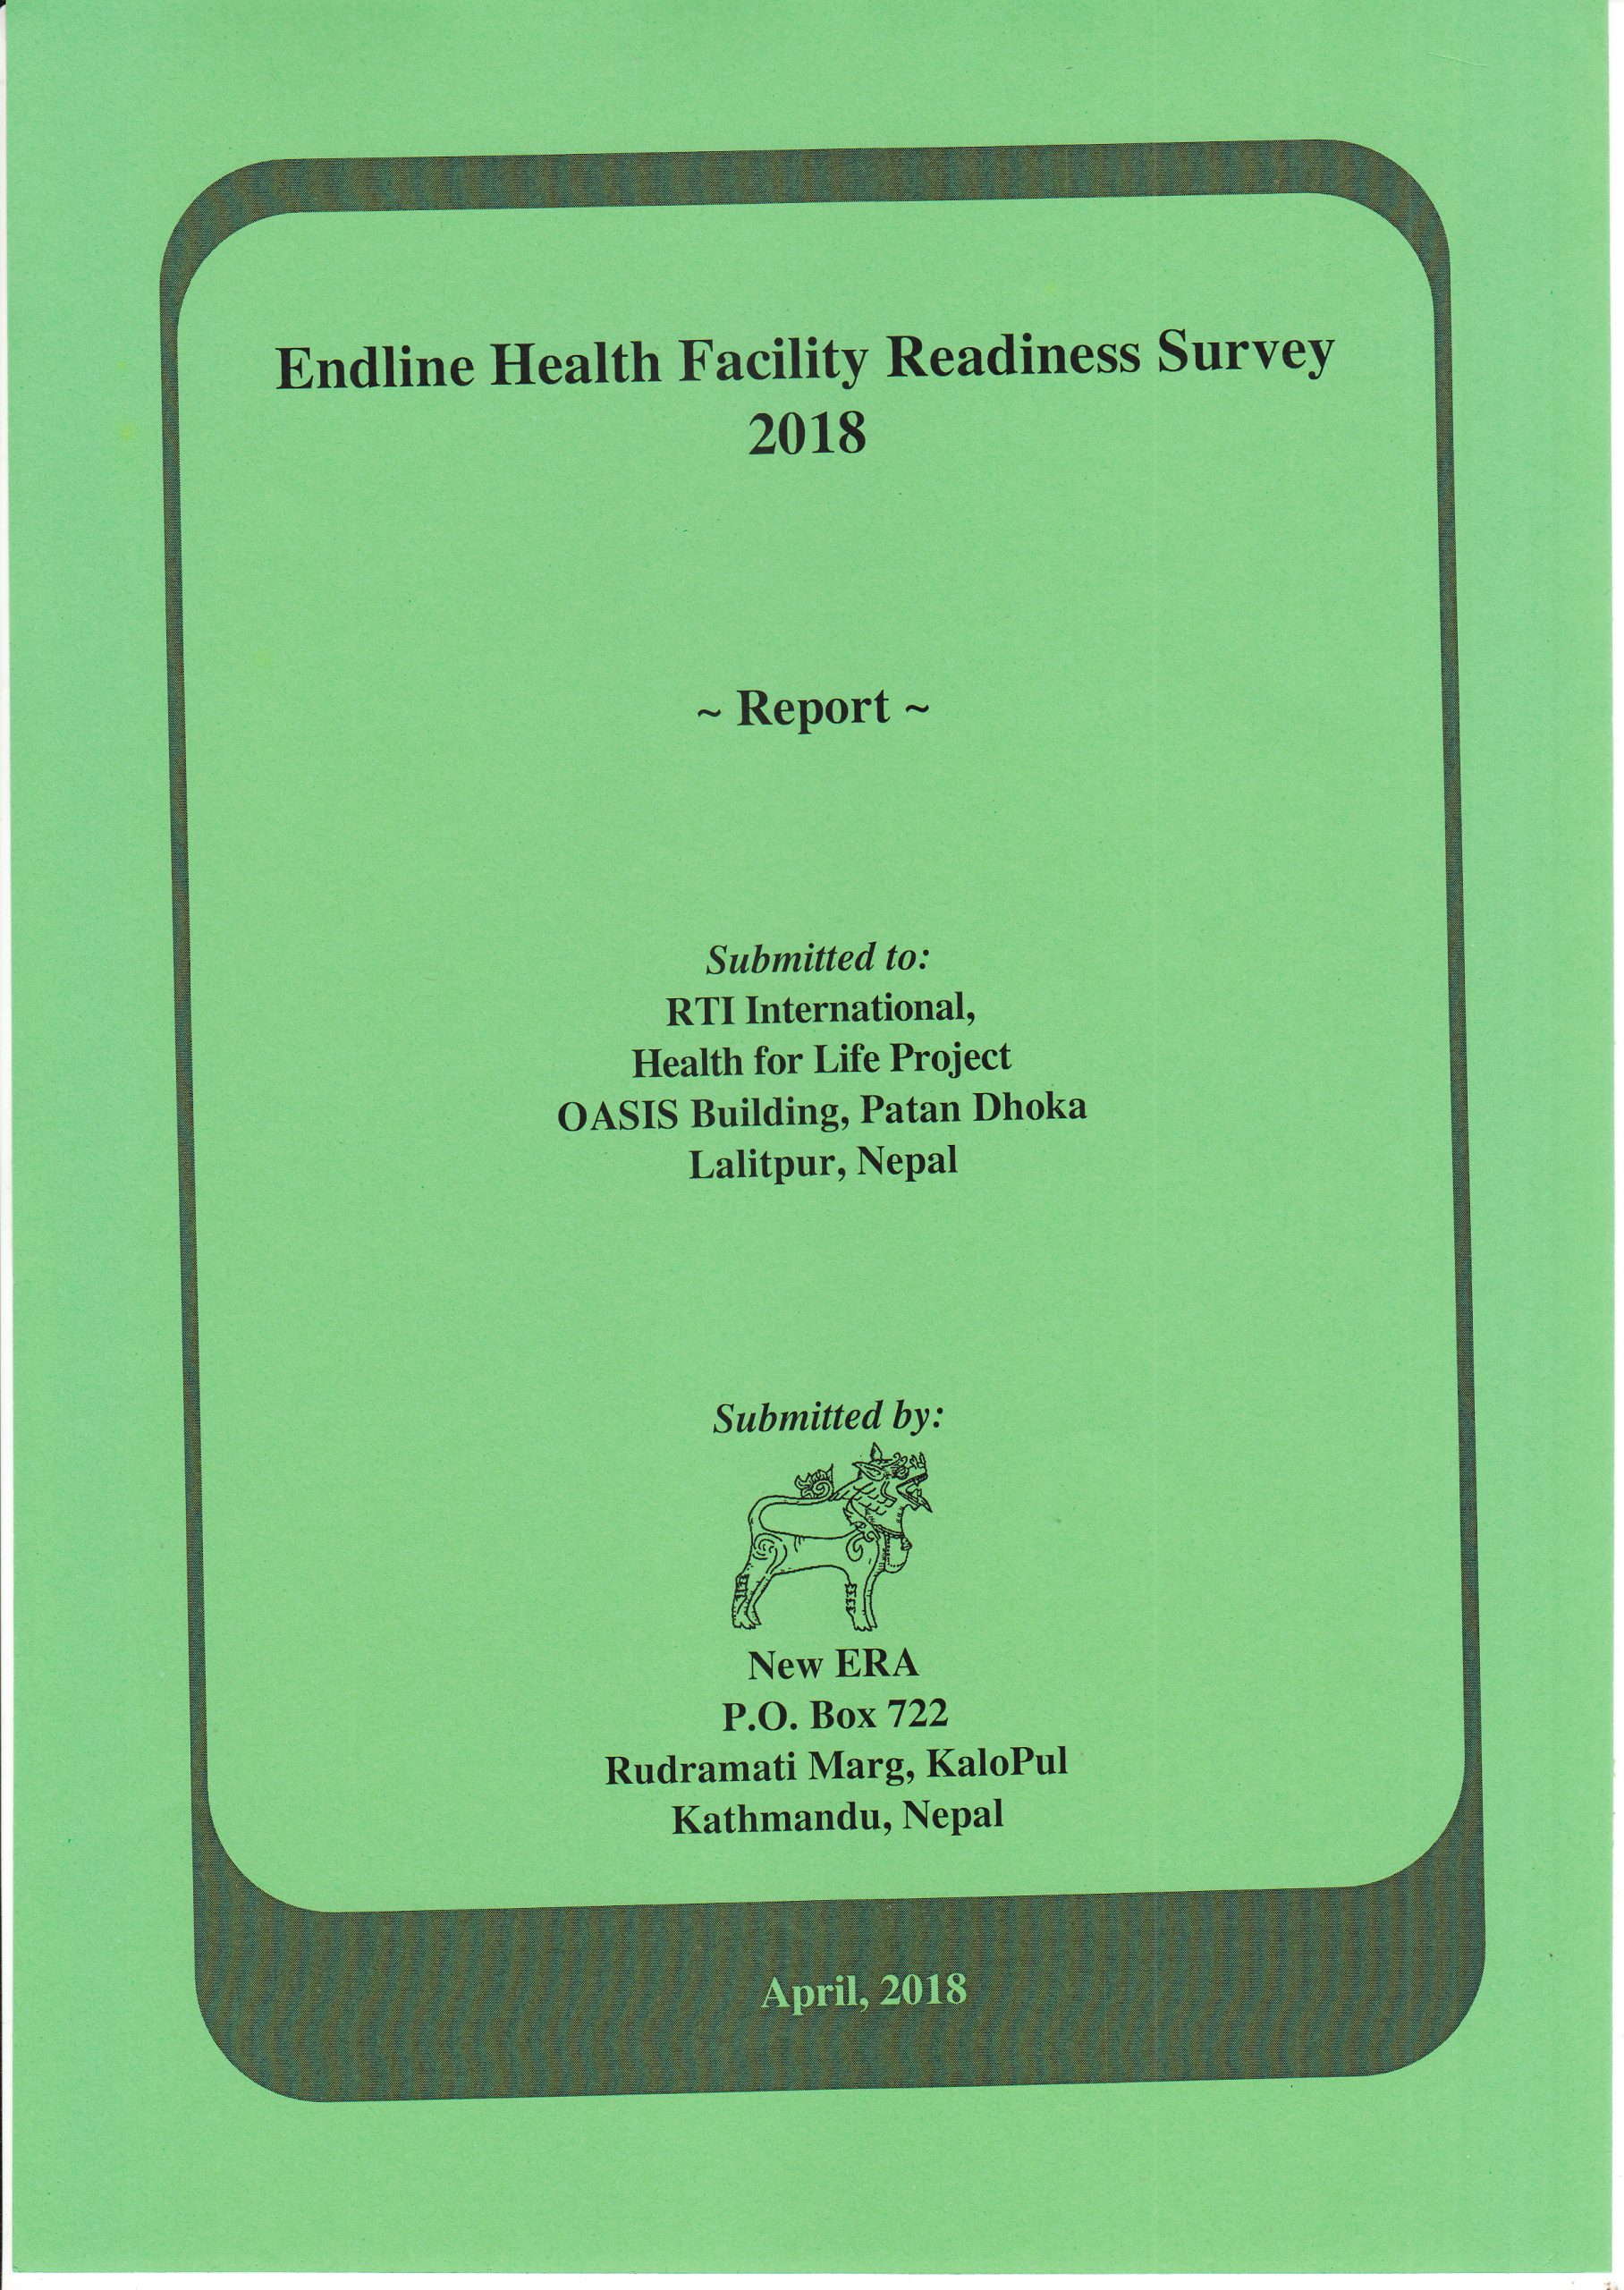 Endline Health Facility Readiness Survey 2018